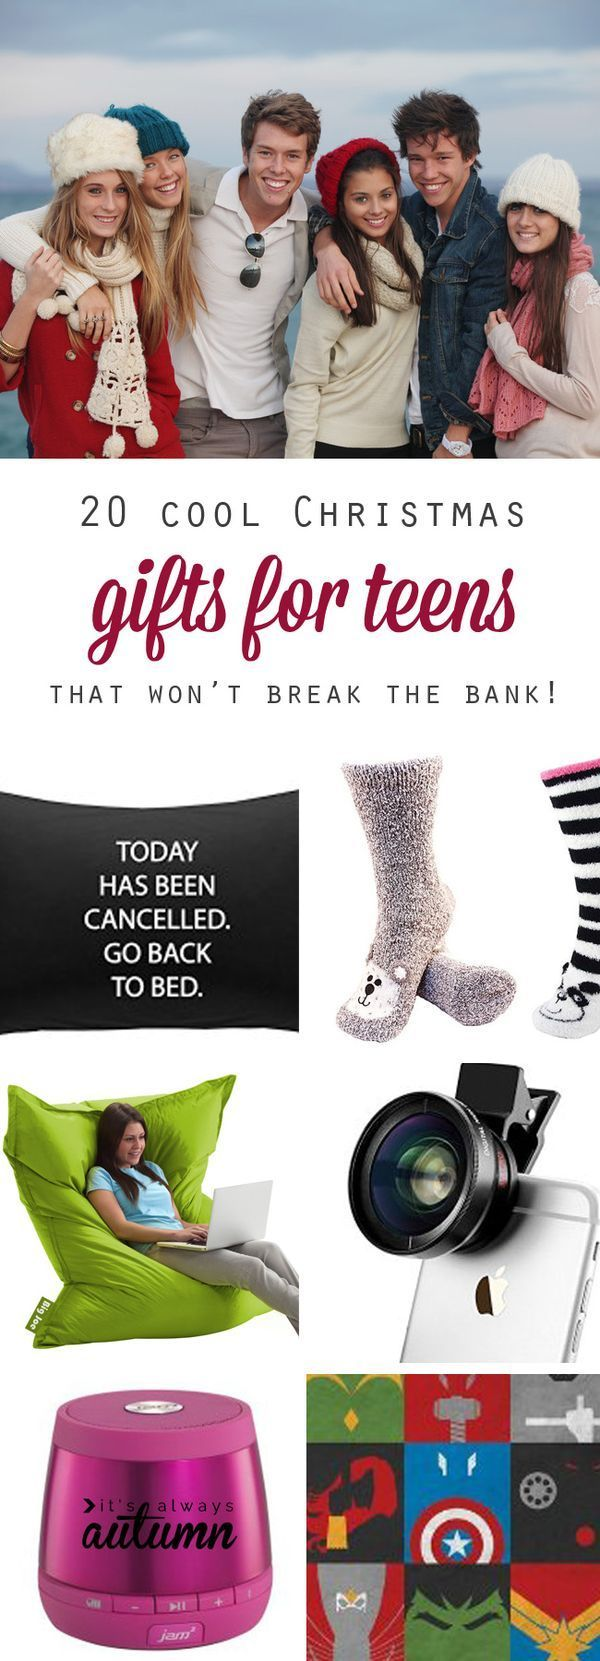 Teenage Christmas Party Ideas Part - 43: Best Christmas Gift Ideas For Teens